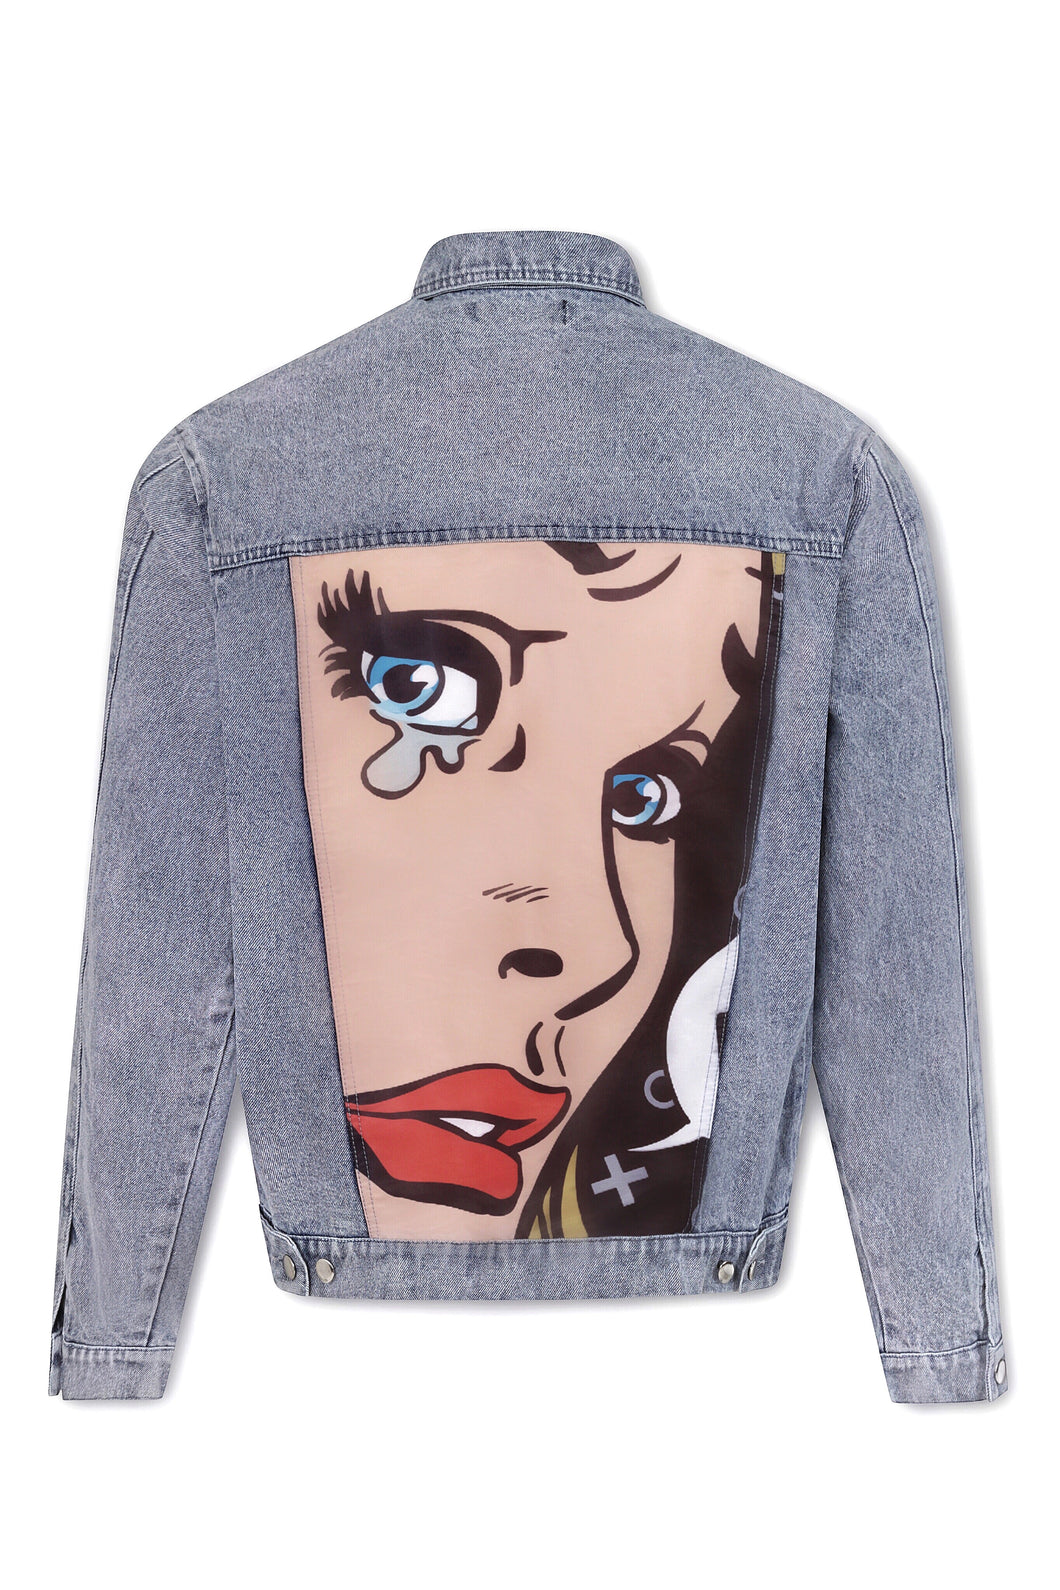 OVERSIZED RETRO DENIM JACKET - BLUE